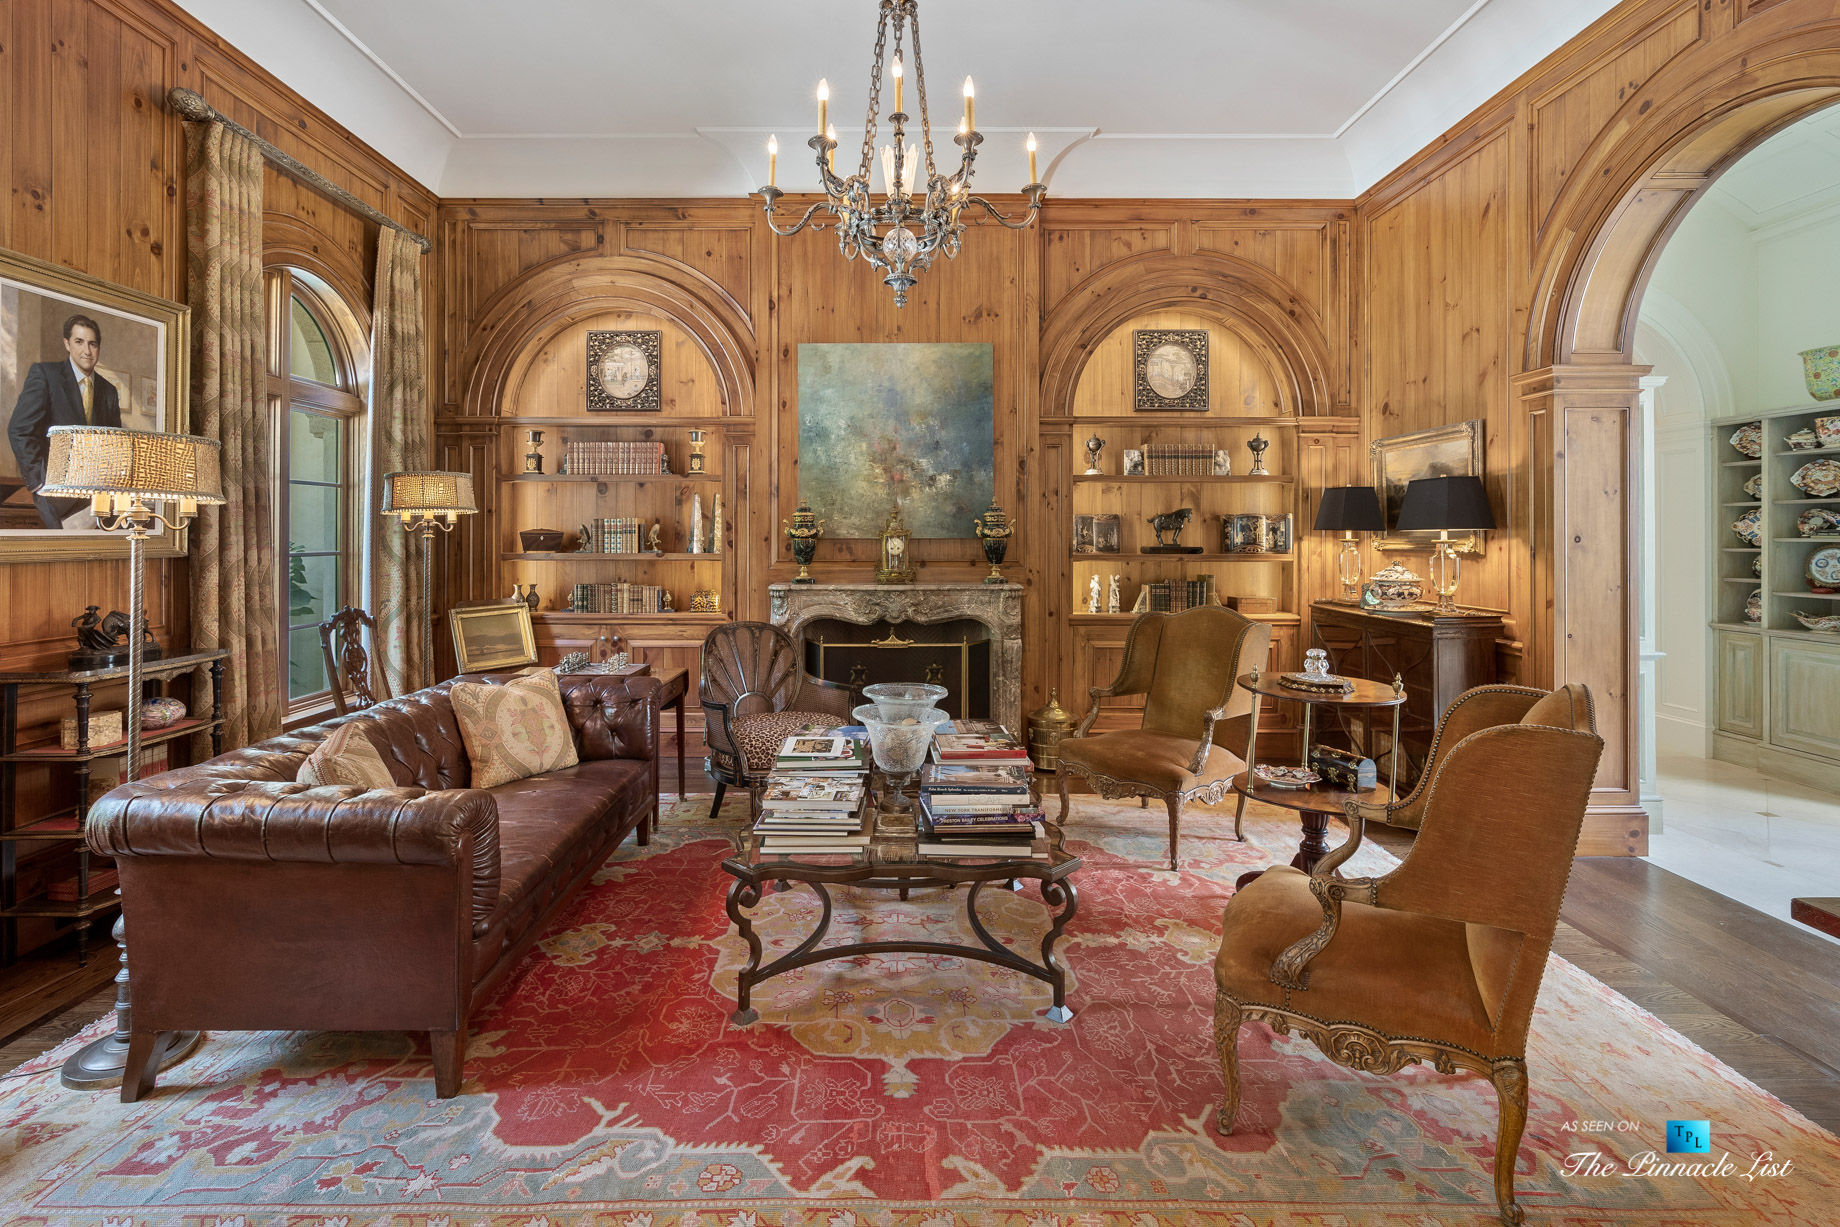 439 Blackland Rd NW, Atlanta, GA, USA – Formal Sitting Room with Fireplace – Luxury Real Estate – Tuxedo Park Mediterranean Mansion Home